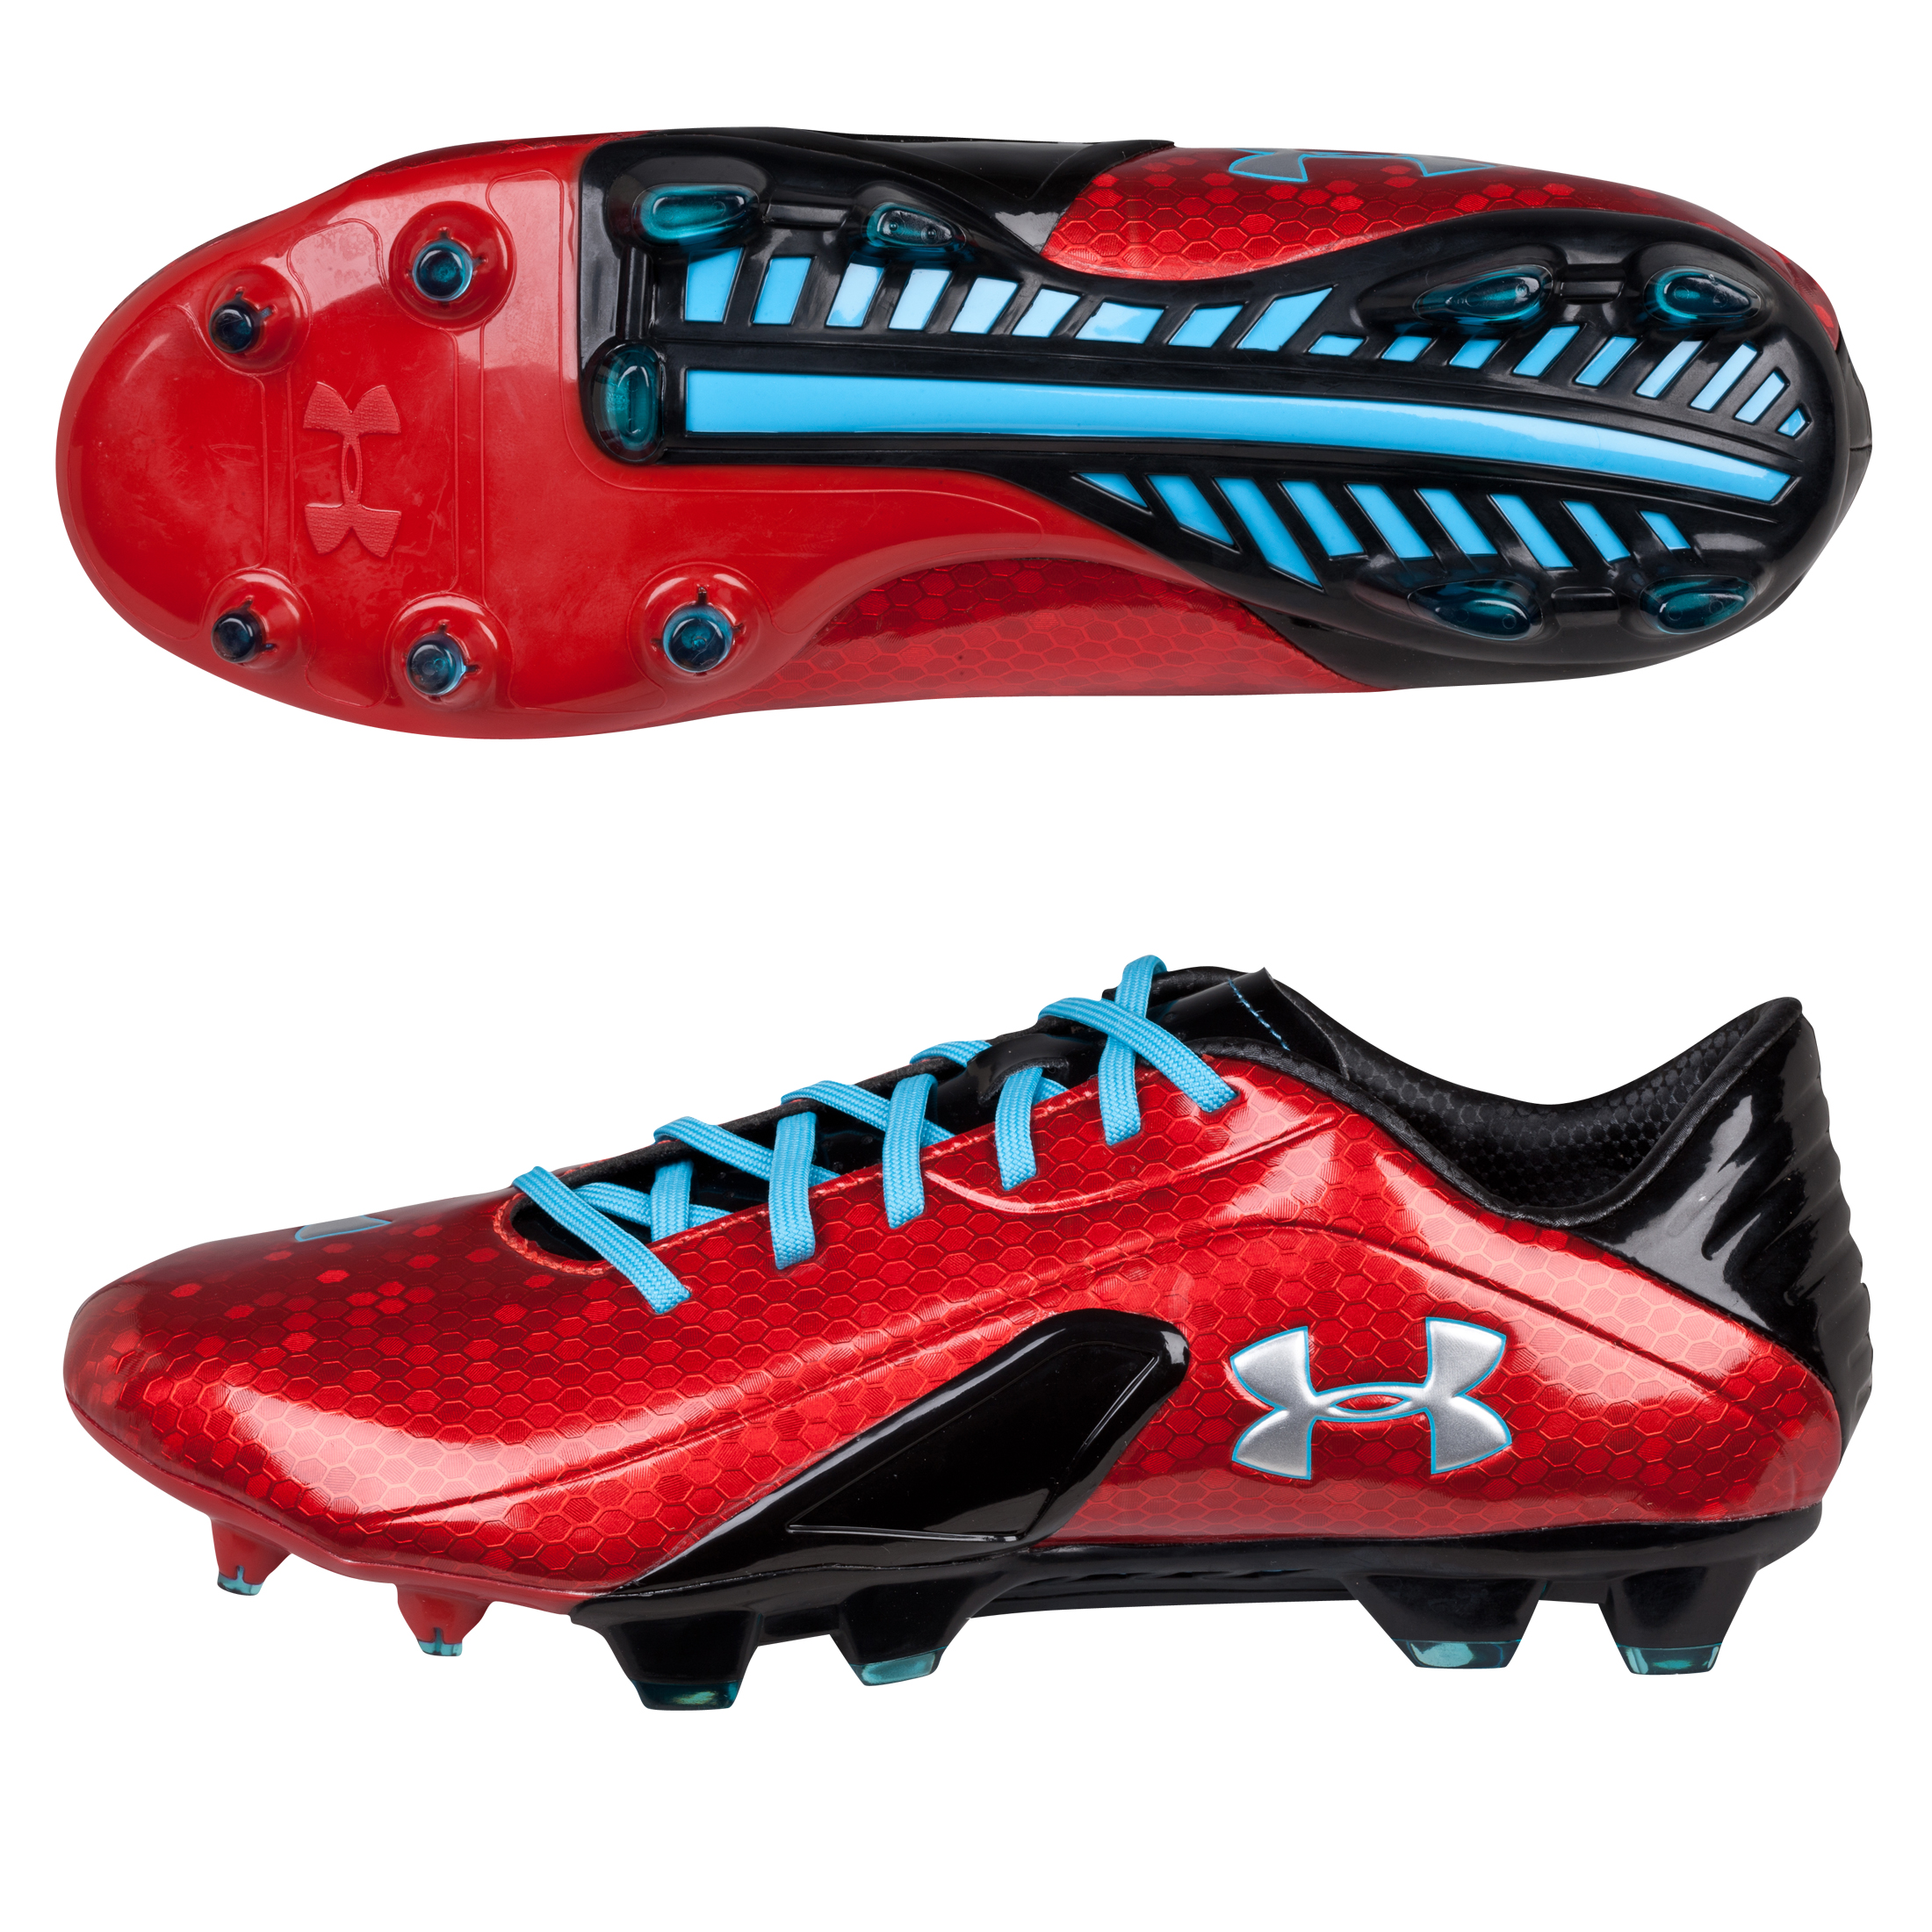 Under Armour Spine Blur III FG-Red/Blk/Blue Red